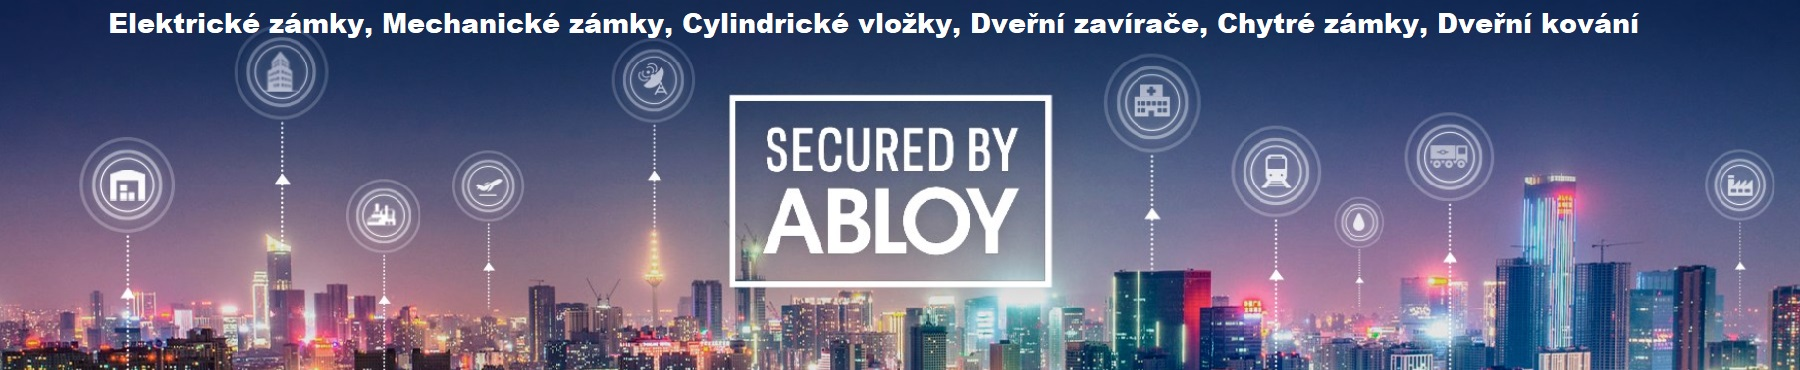 ABLOY SECURED